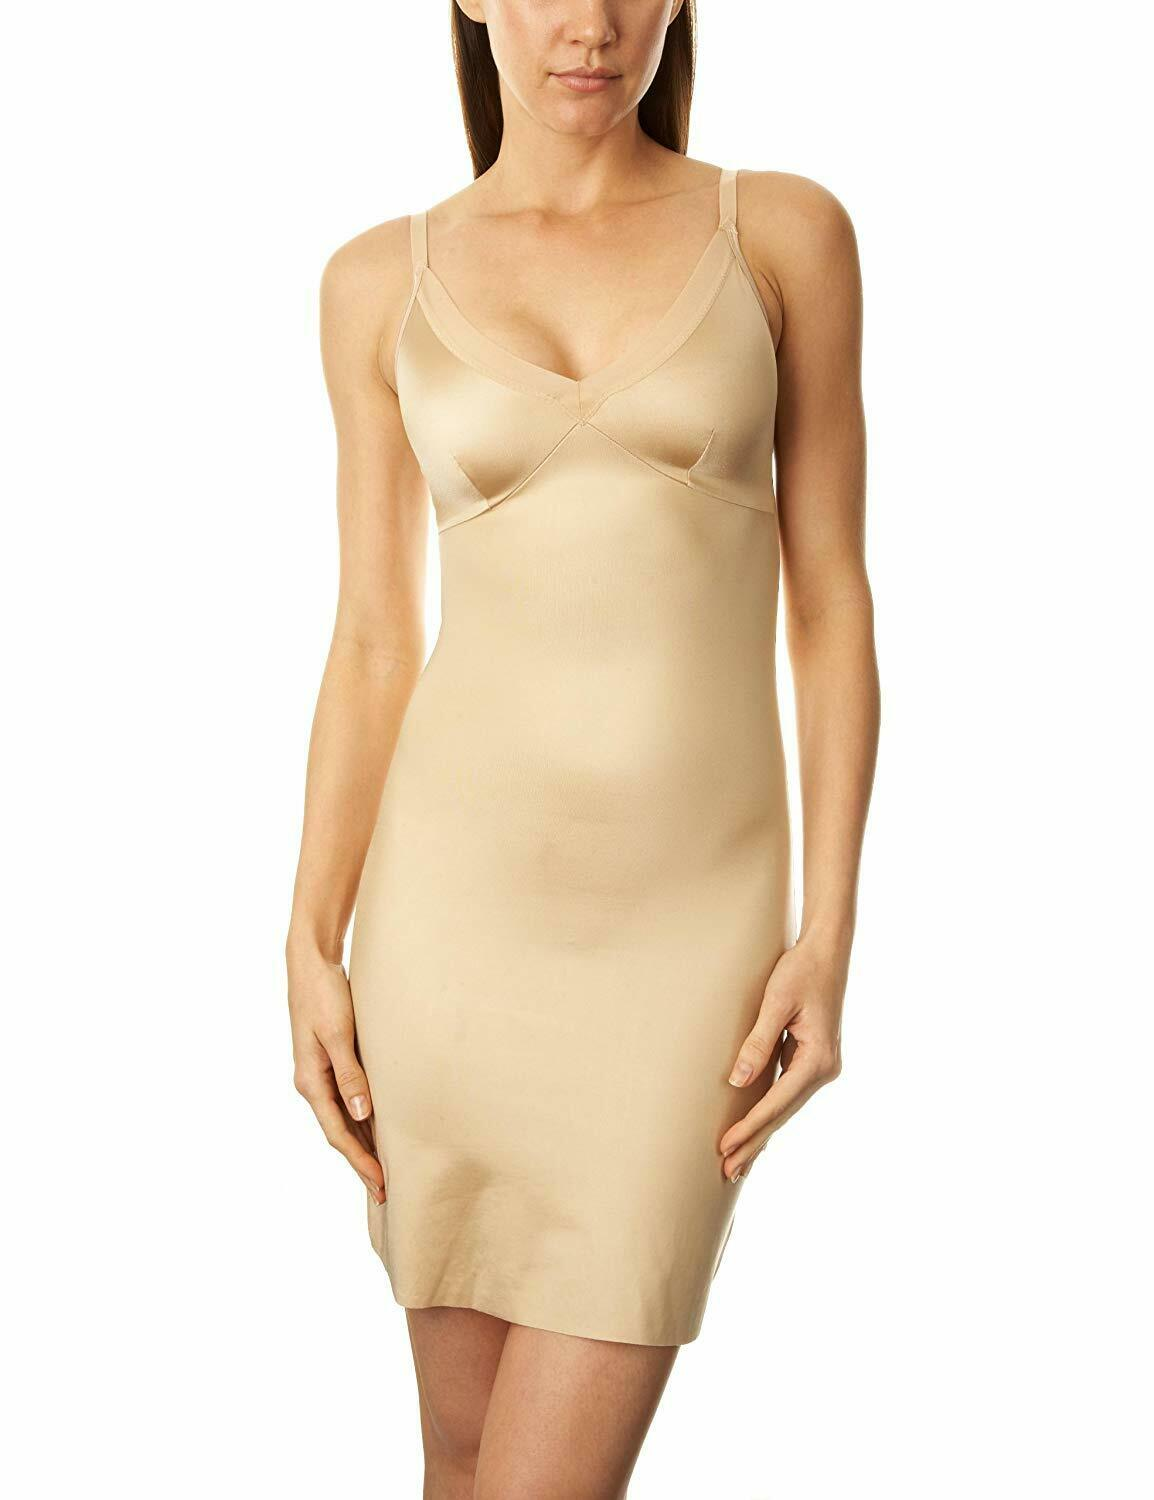 search-spanx-nude-slip-l-nude-phone-pic